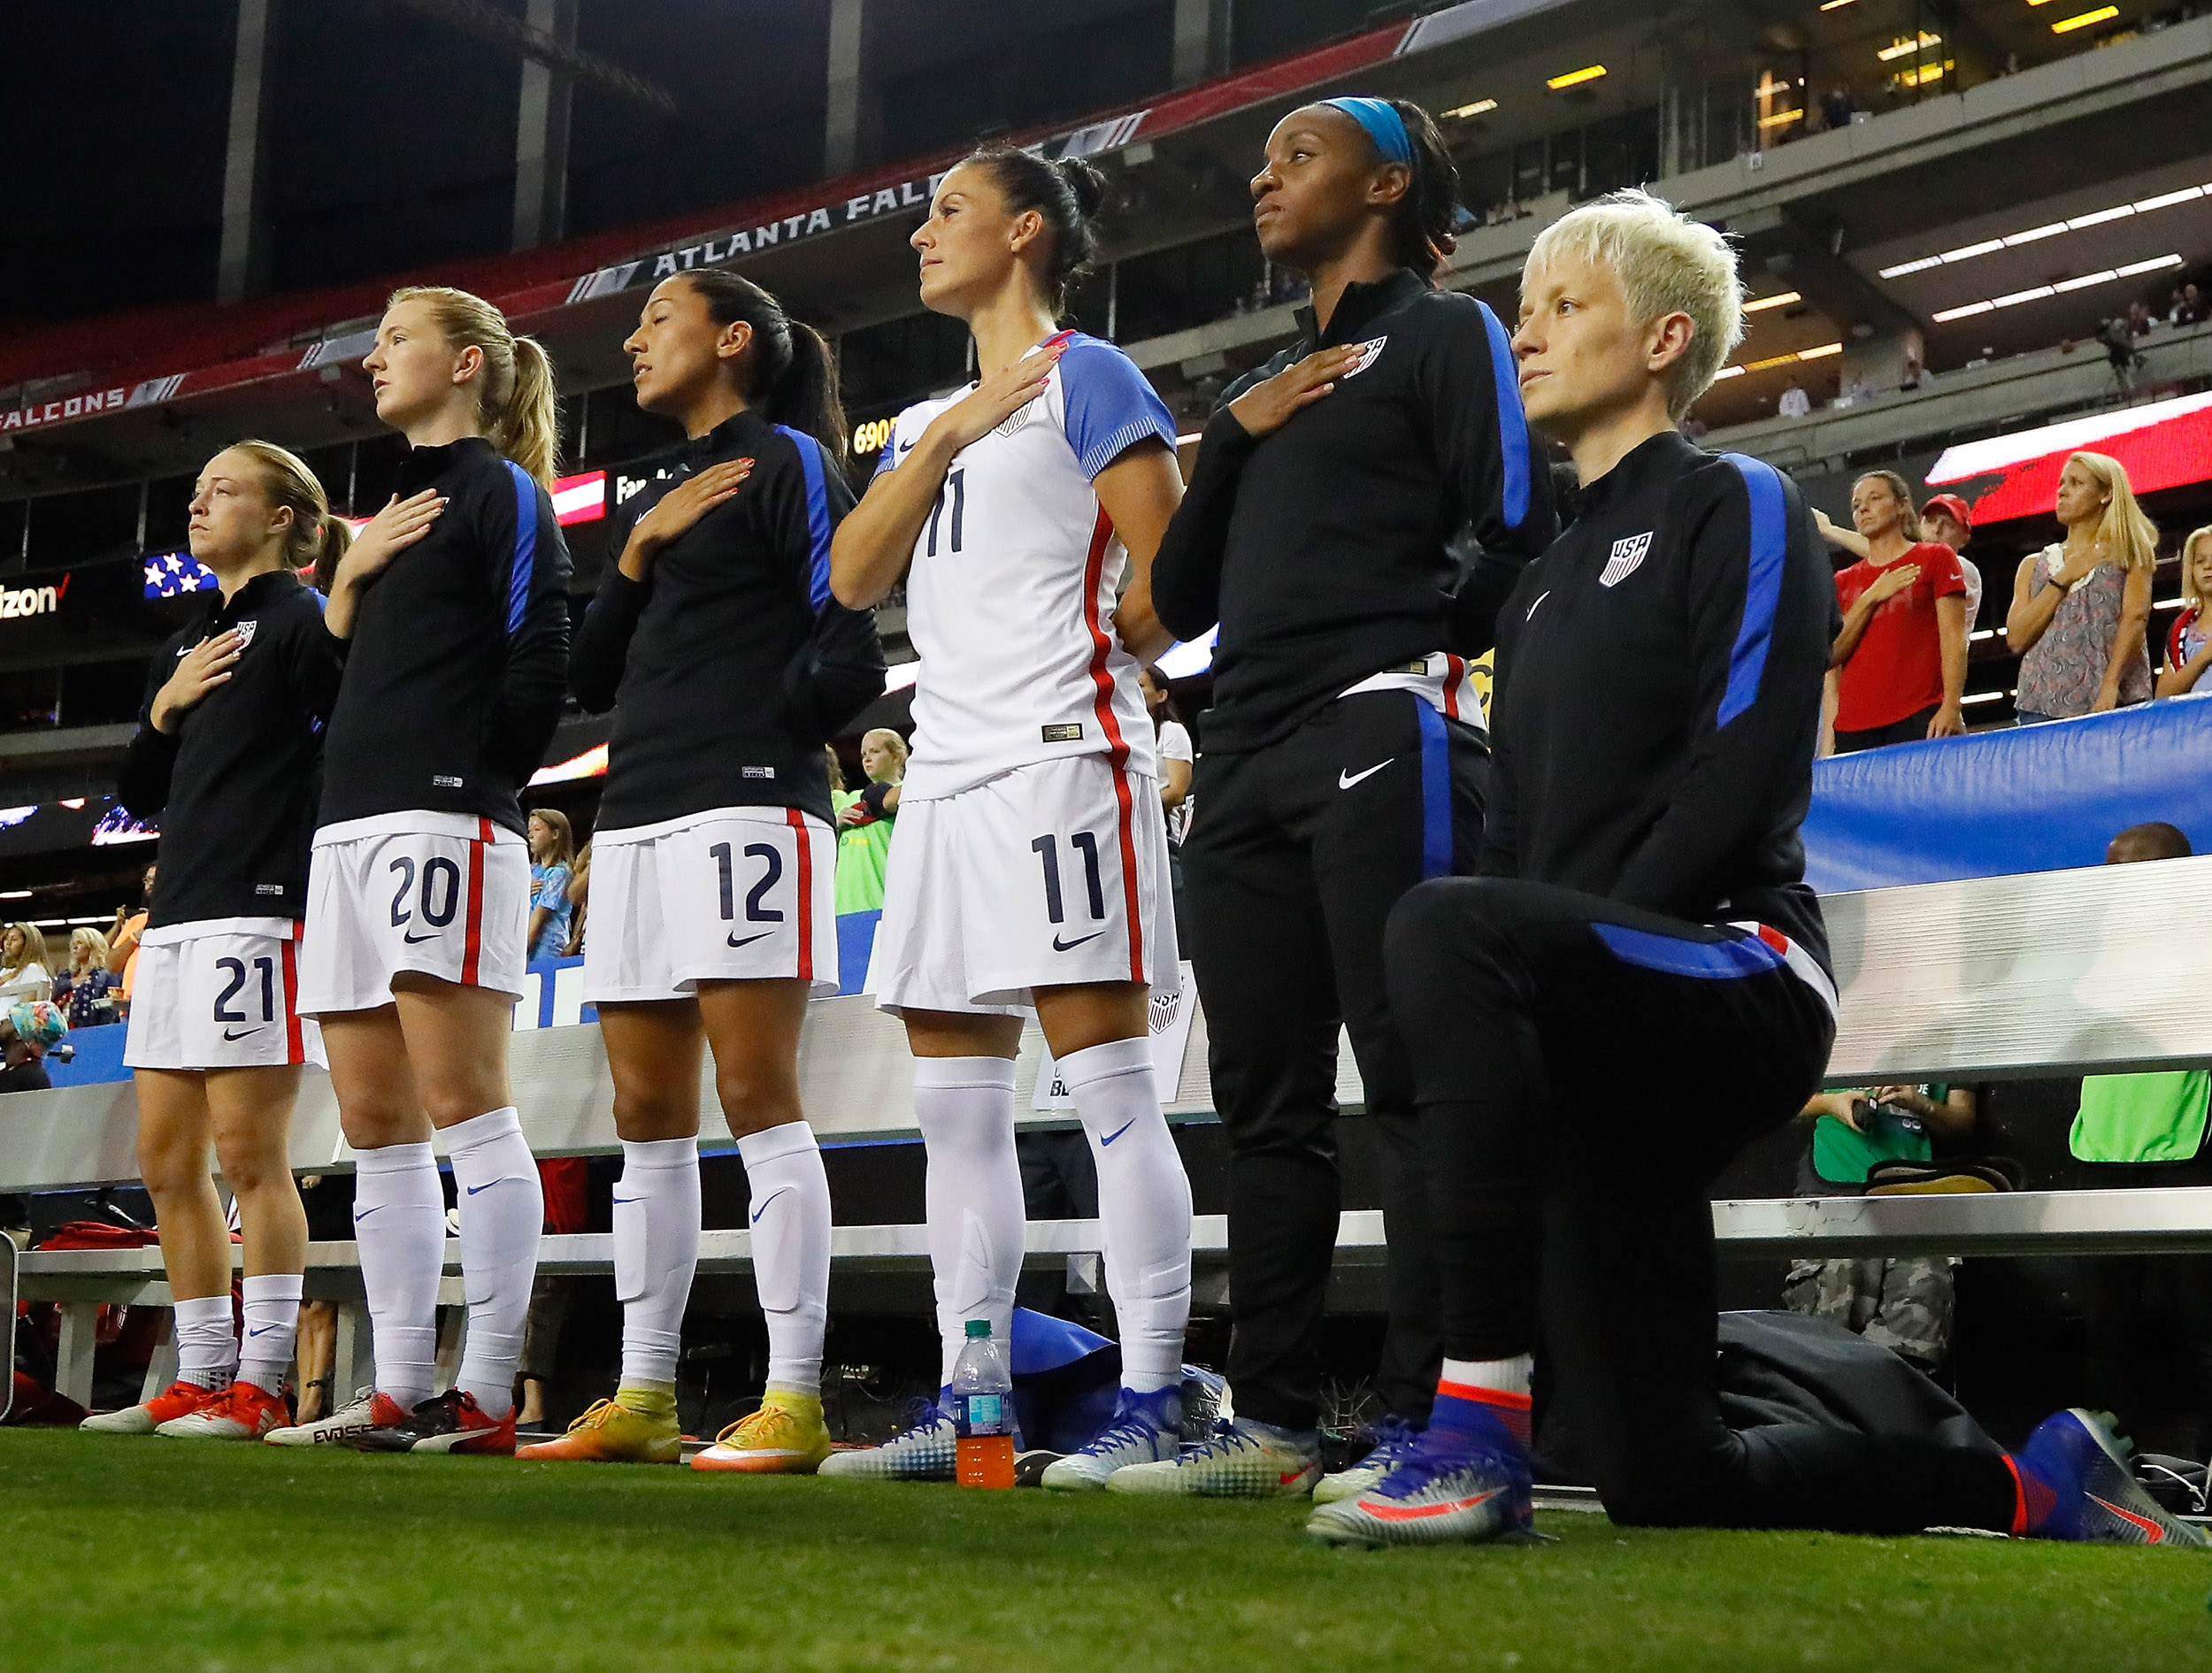 Megan Rapinoe kneels during the National Anthem prior to the match between the United States and the Netherlands at Georgia Dome in Atlanta, on September 18, 2016.